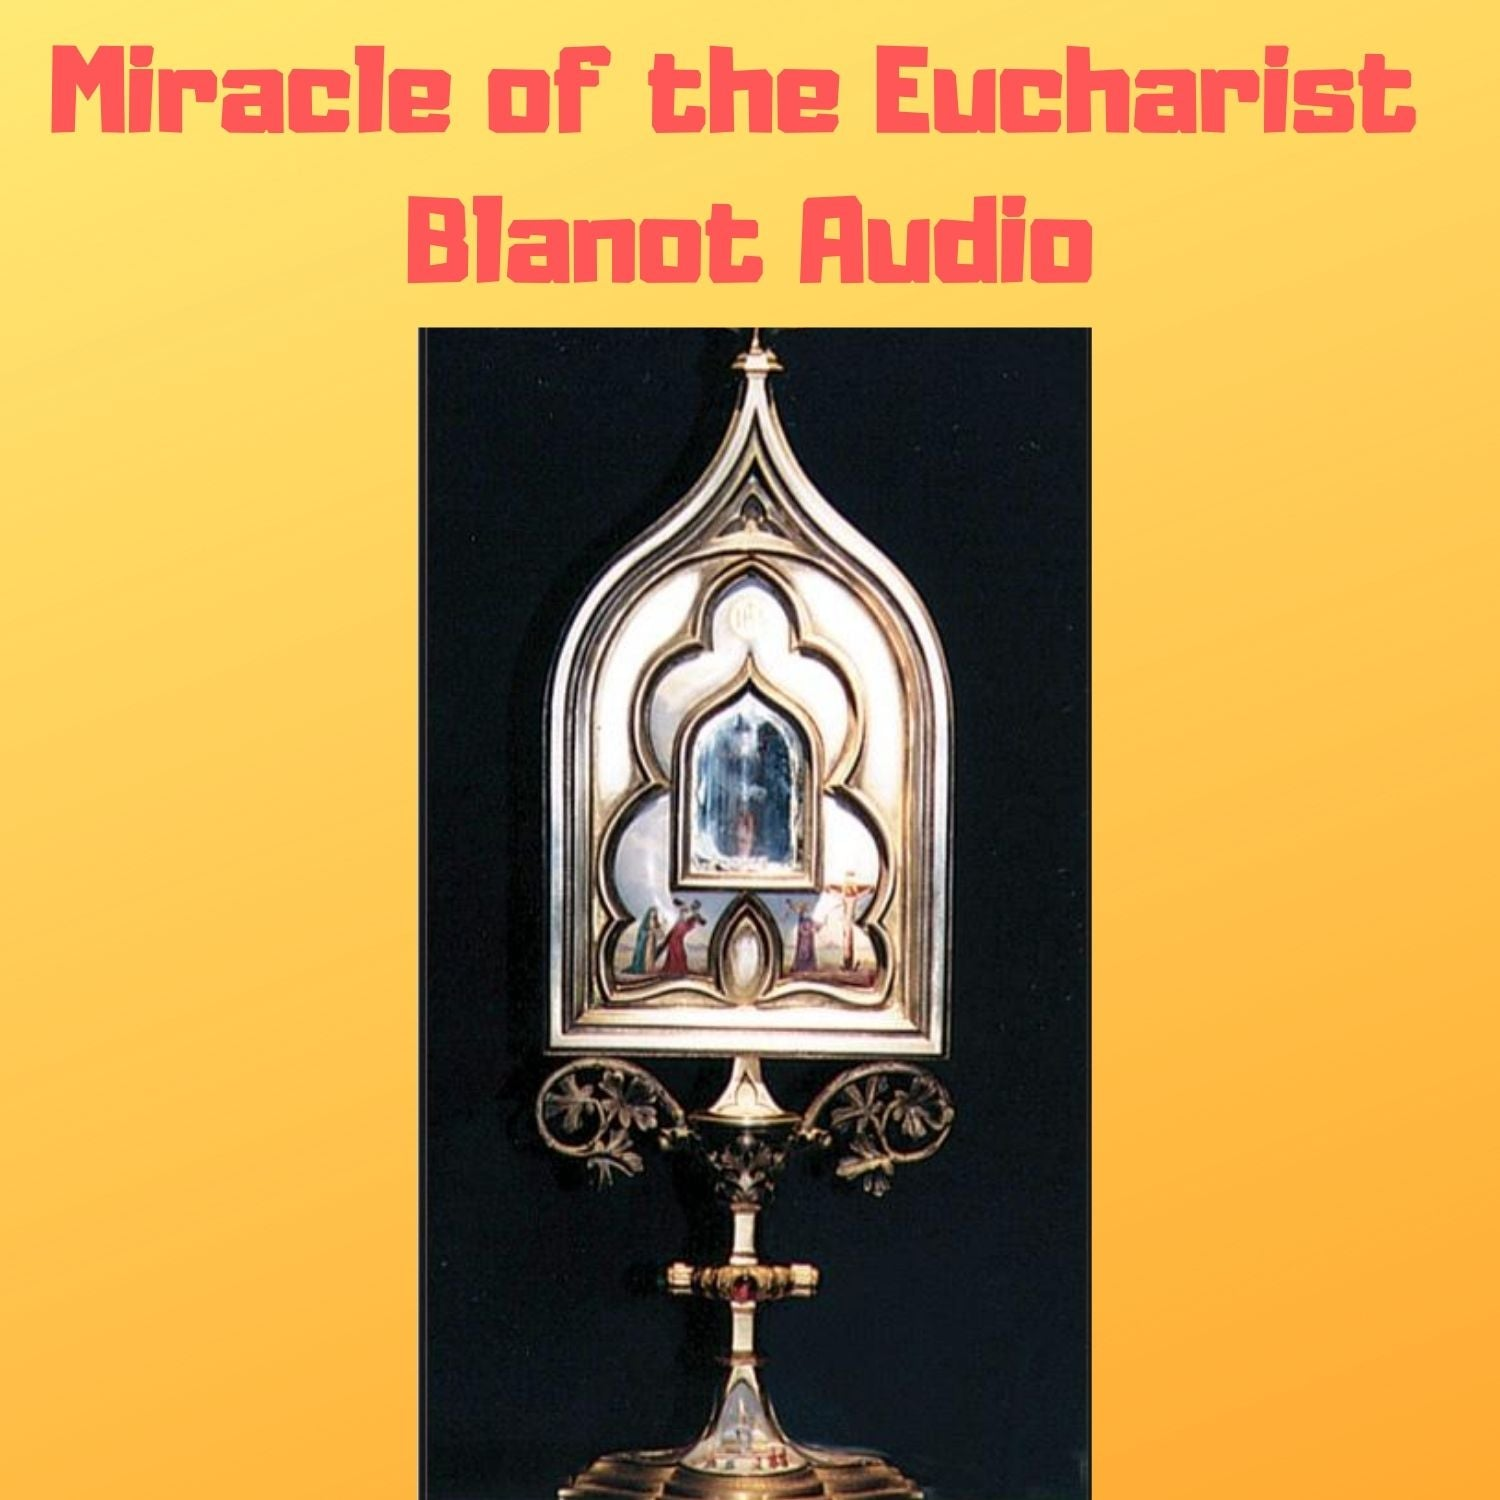 Miracle of the Eucharist of Blanot, France 1331 Audiobook Audiobook Bob and Penny Lord Ministry